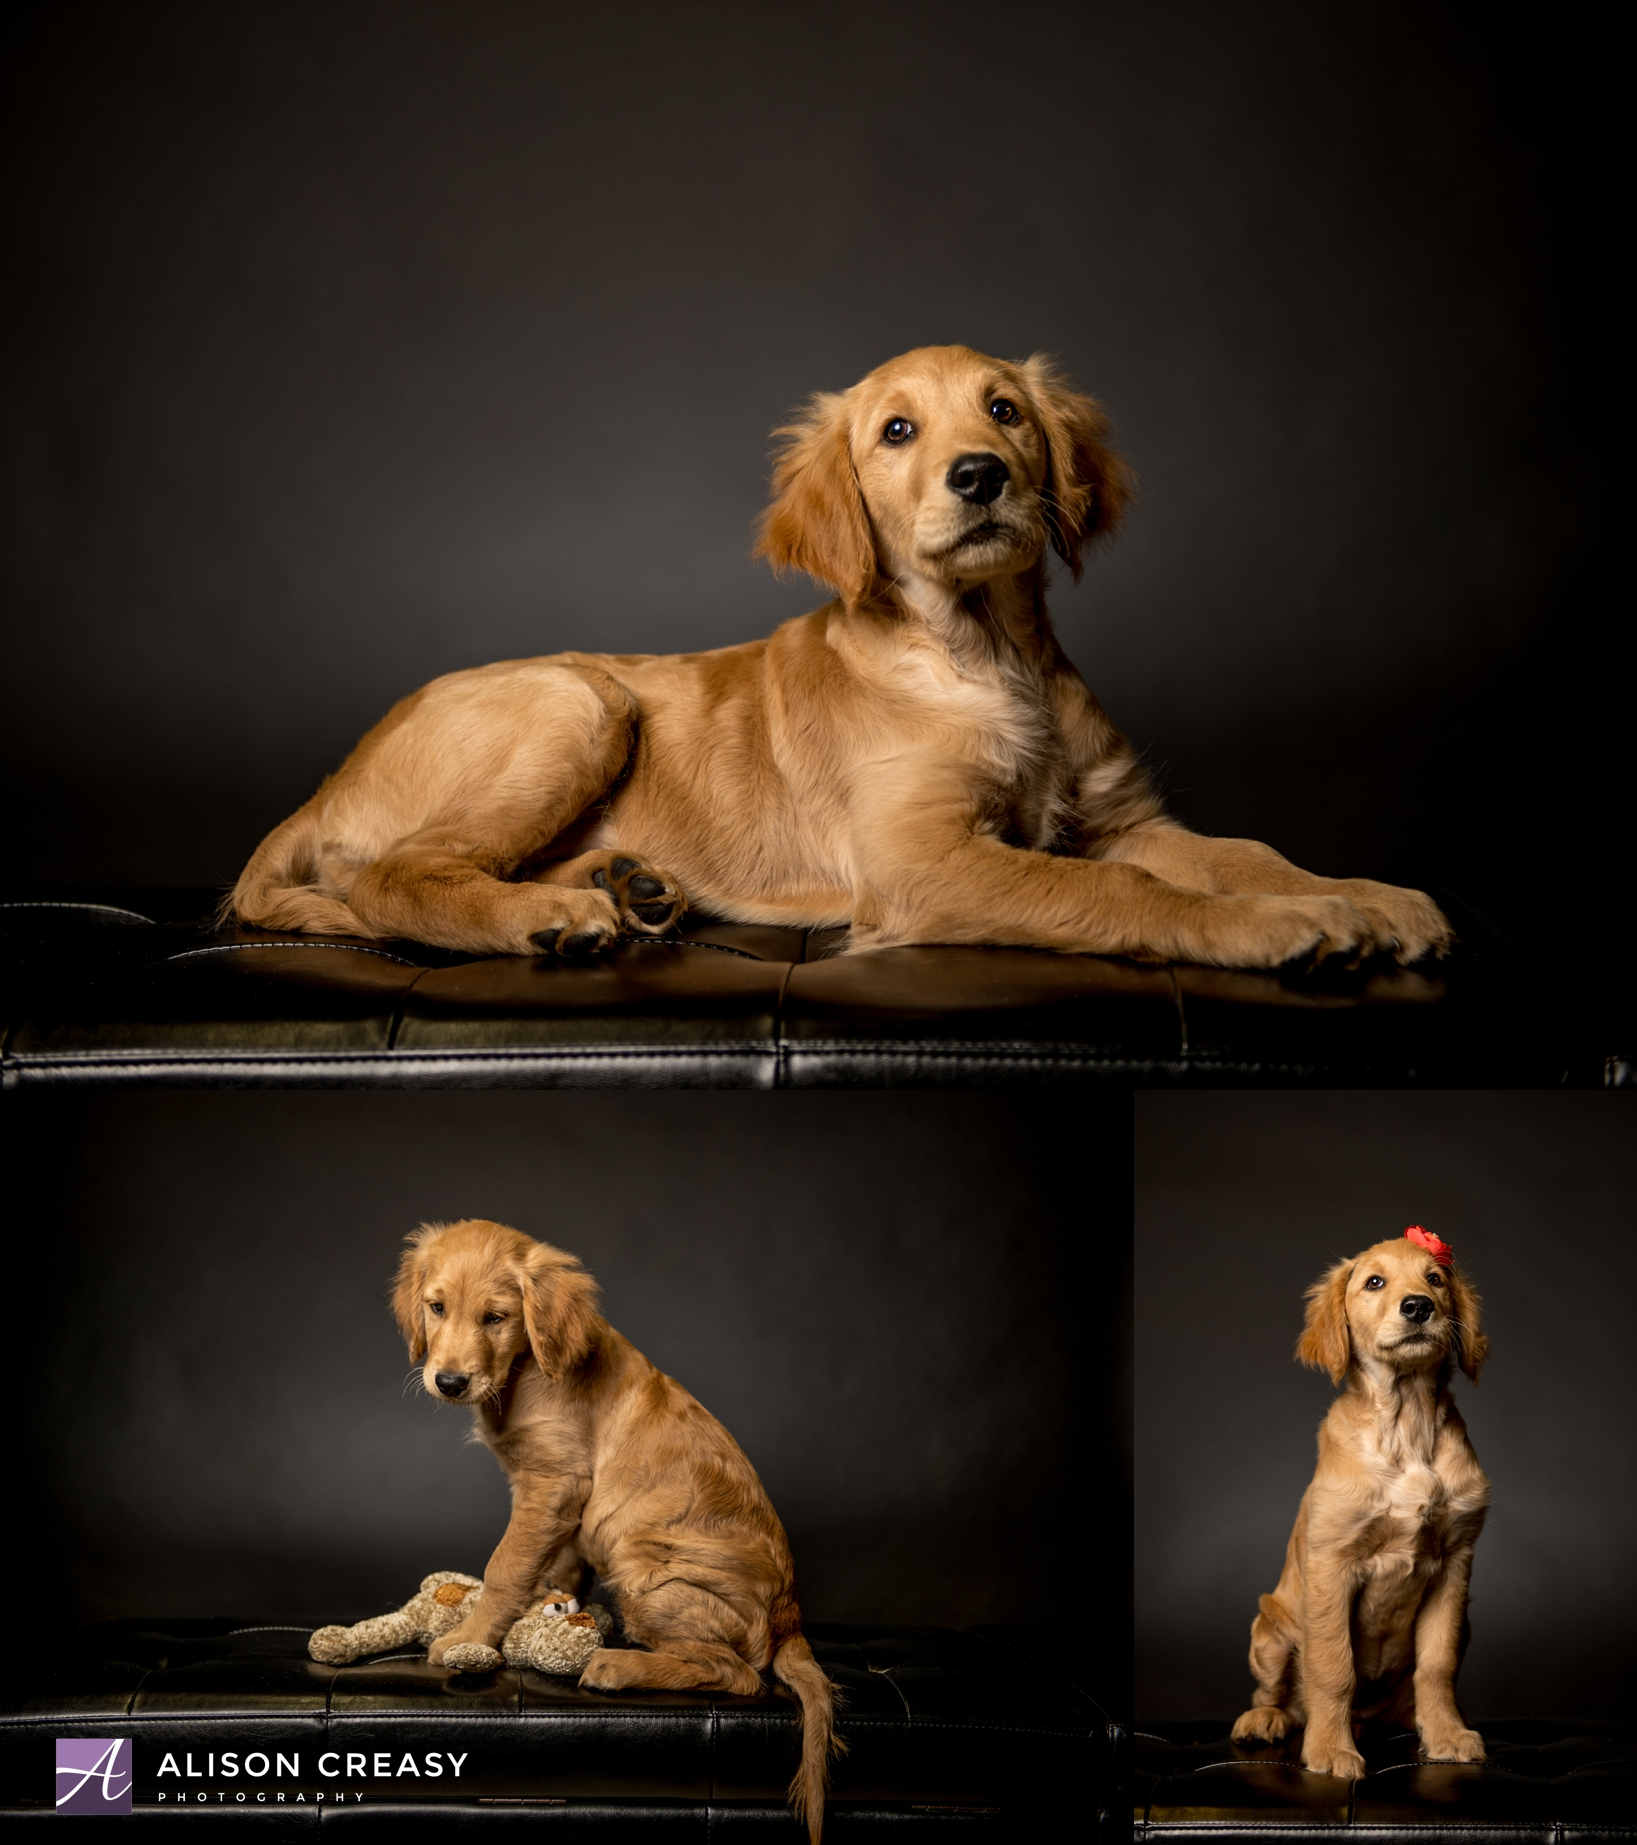 Alison-Creasy-Photography-Lynchburg-VA-Pet-Photographer_0003.jpg